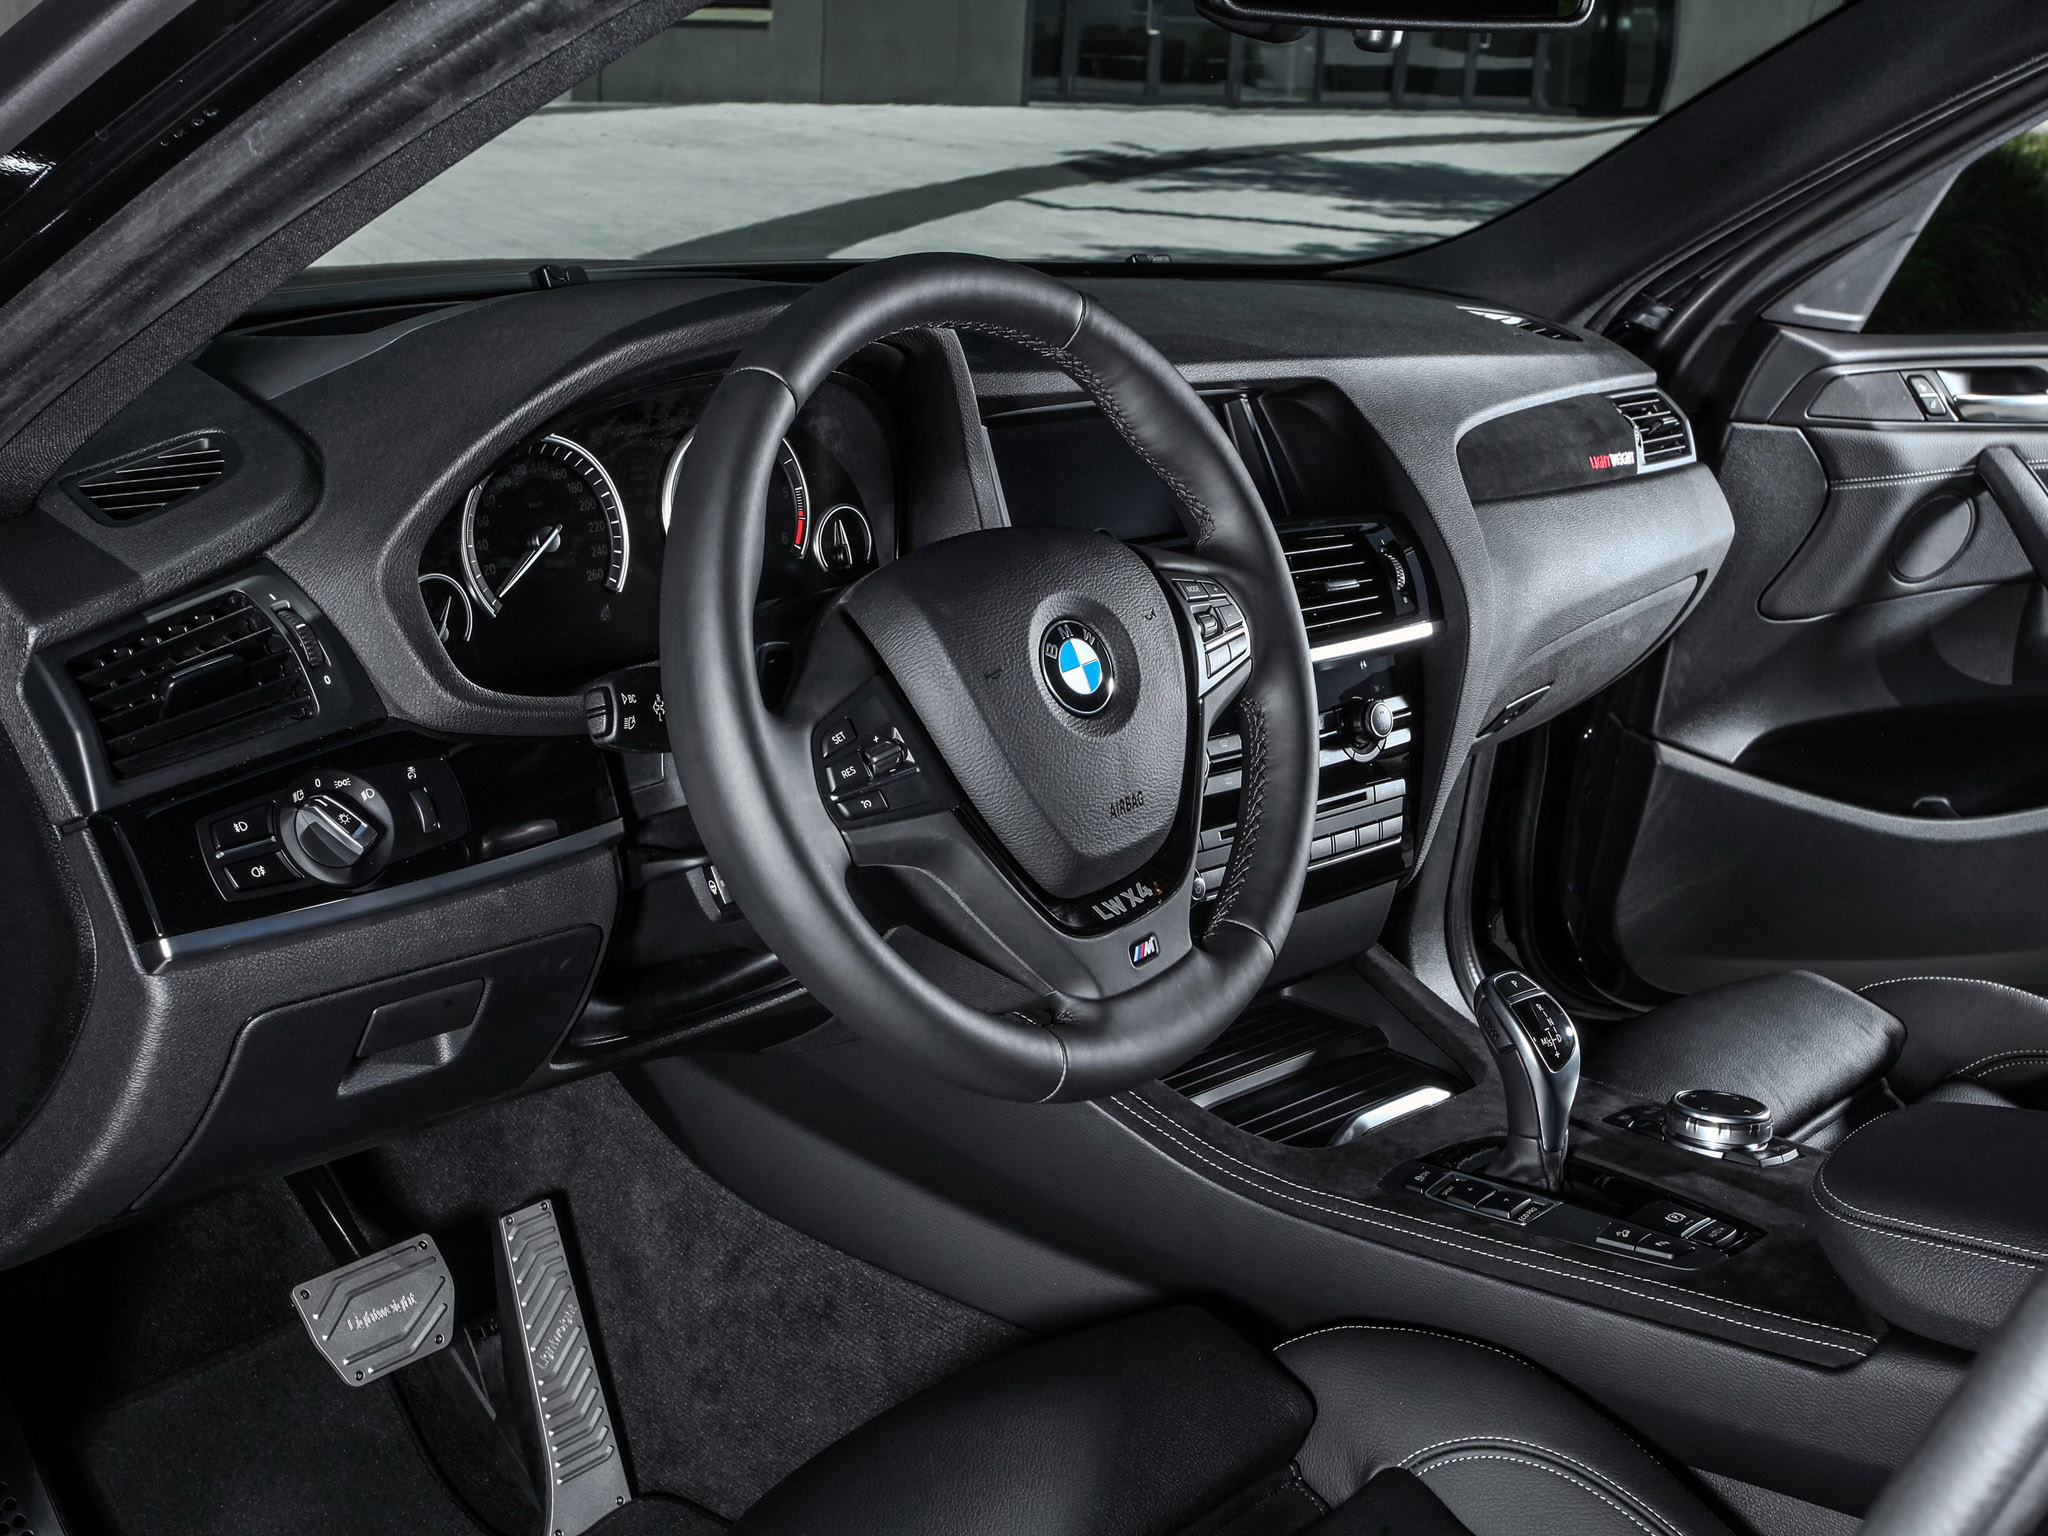 2015 Bmw X4 - Lightweight Performance